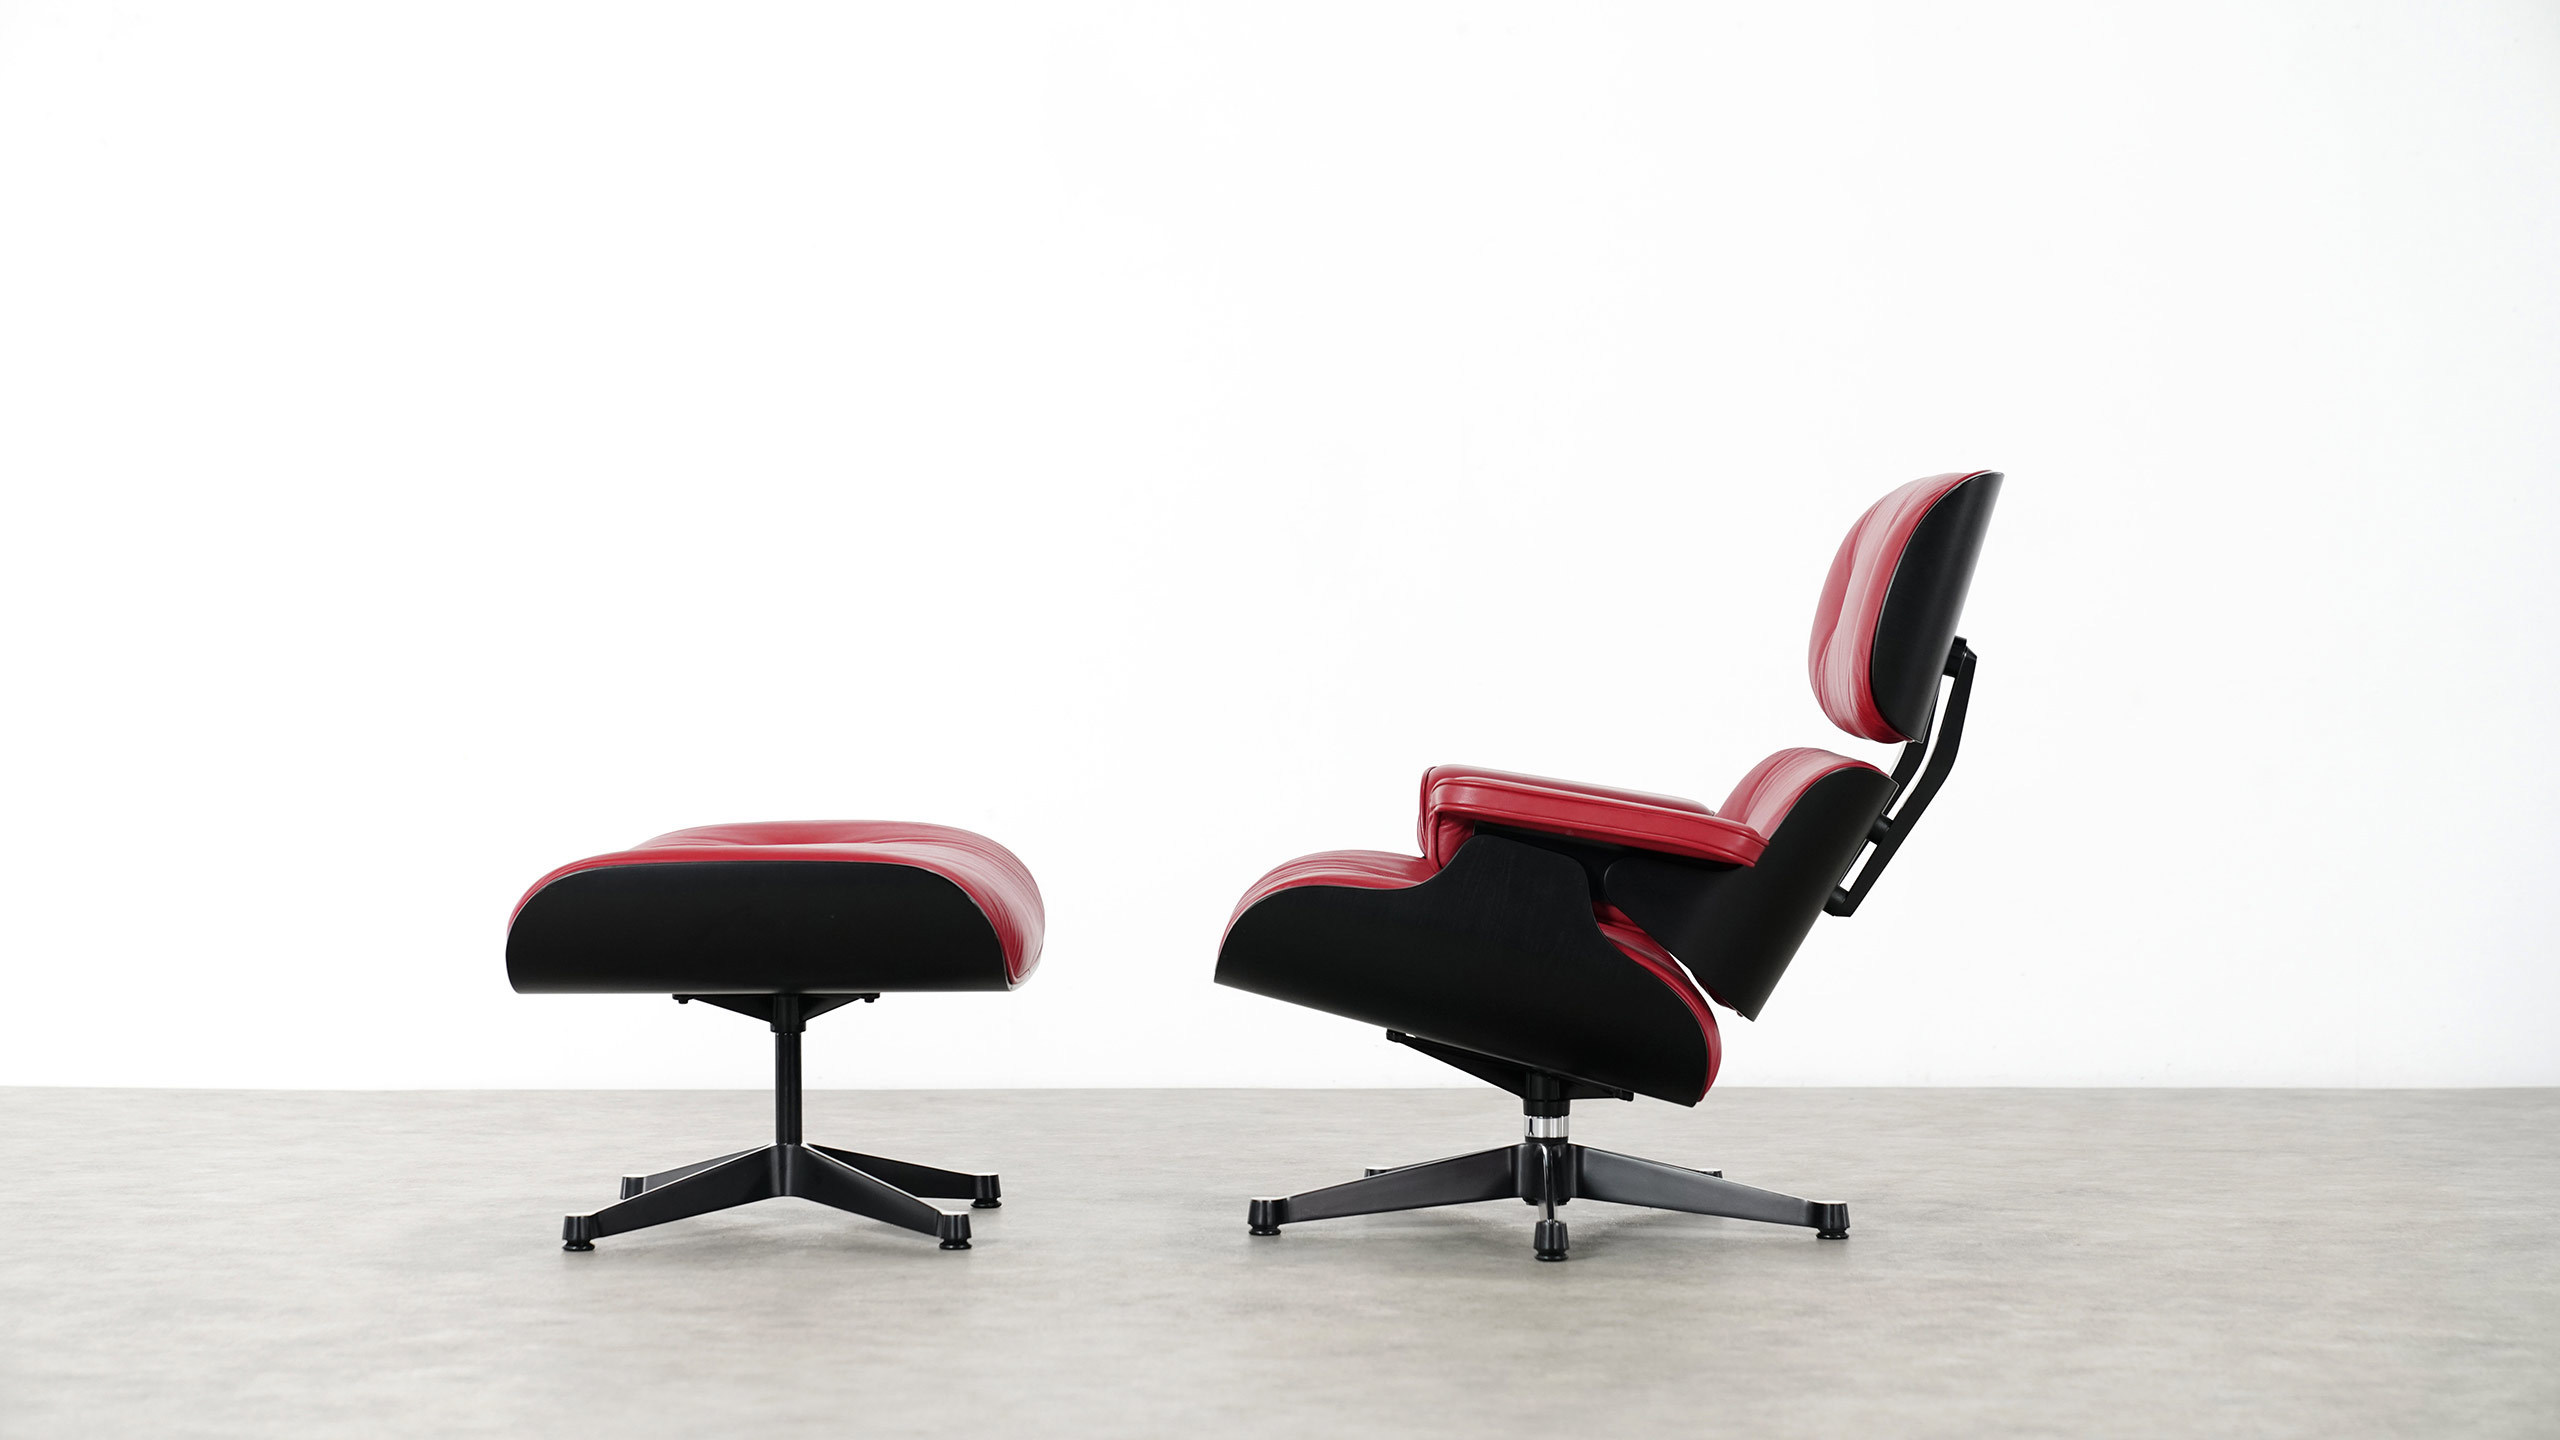 Vitra Chalres Eames : Charles eames lounge chair by vitra